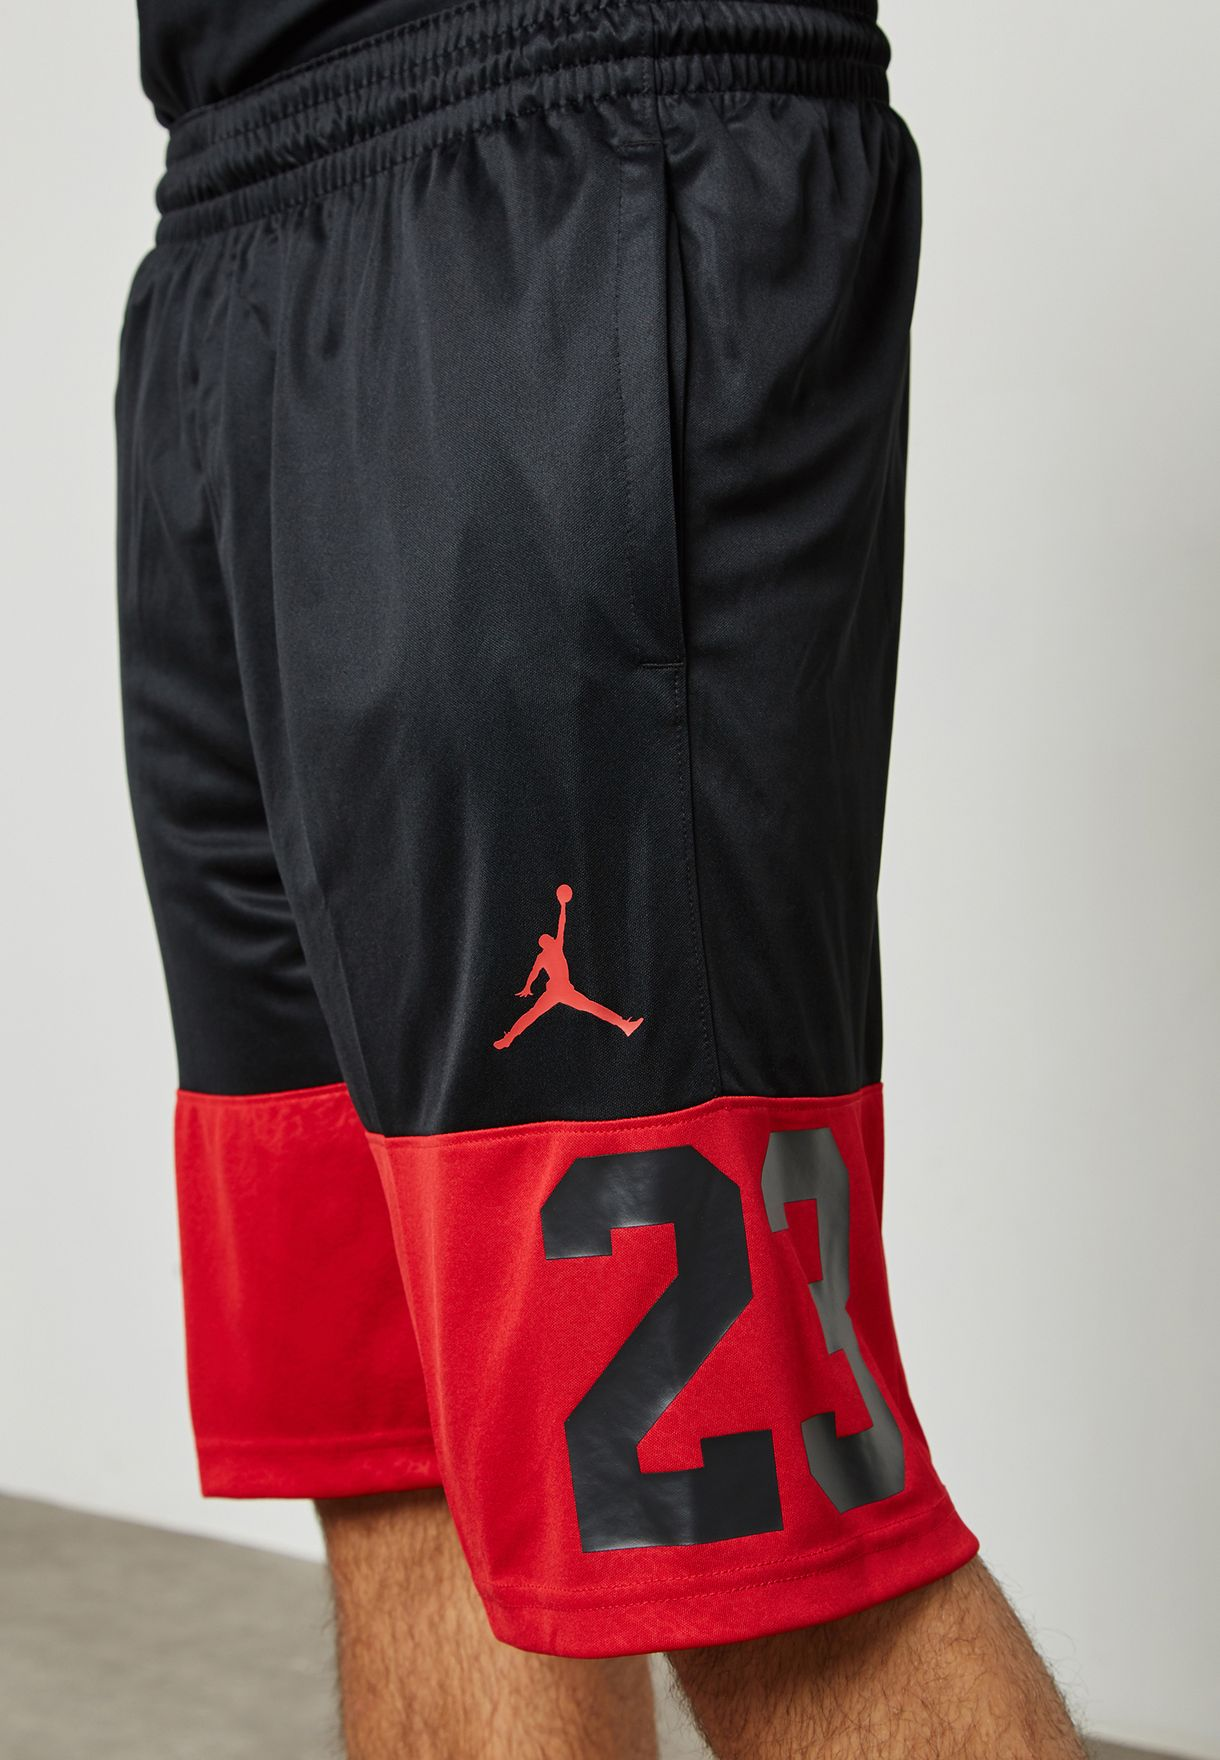 9c3ec757e94382 ... Rise 3 Basketball Shorts  Shop Nike black Jordan Shorts 861465-013 for  Men in UAE - NI727AT12KJB ...